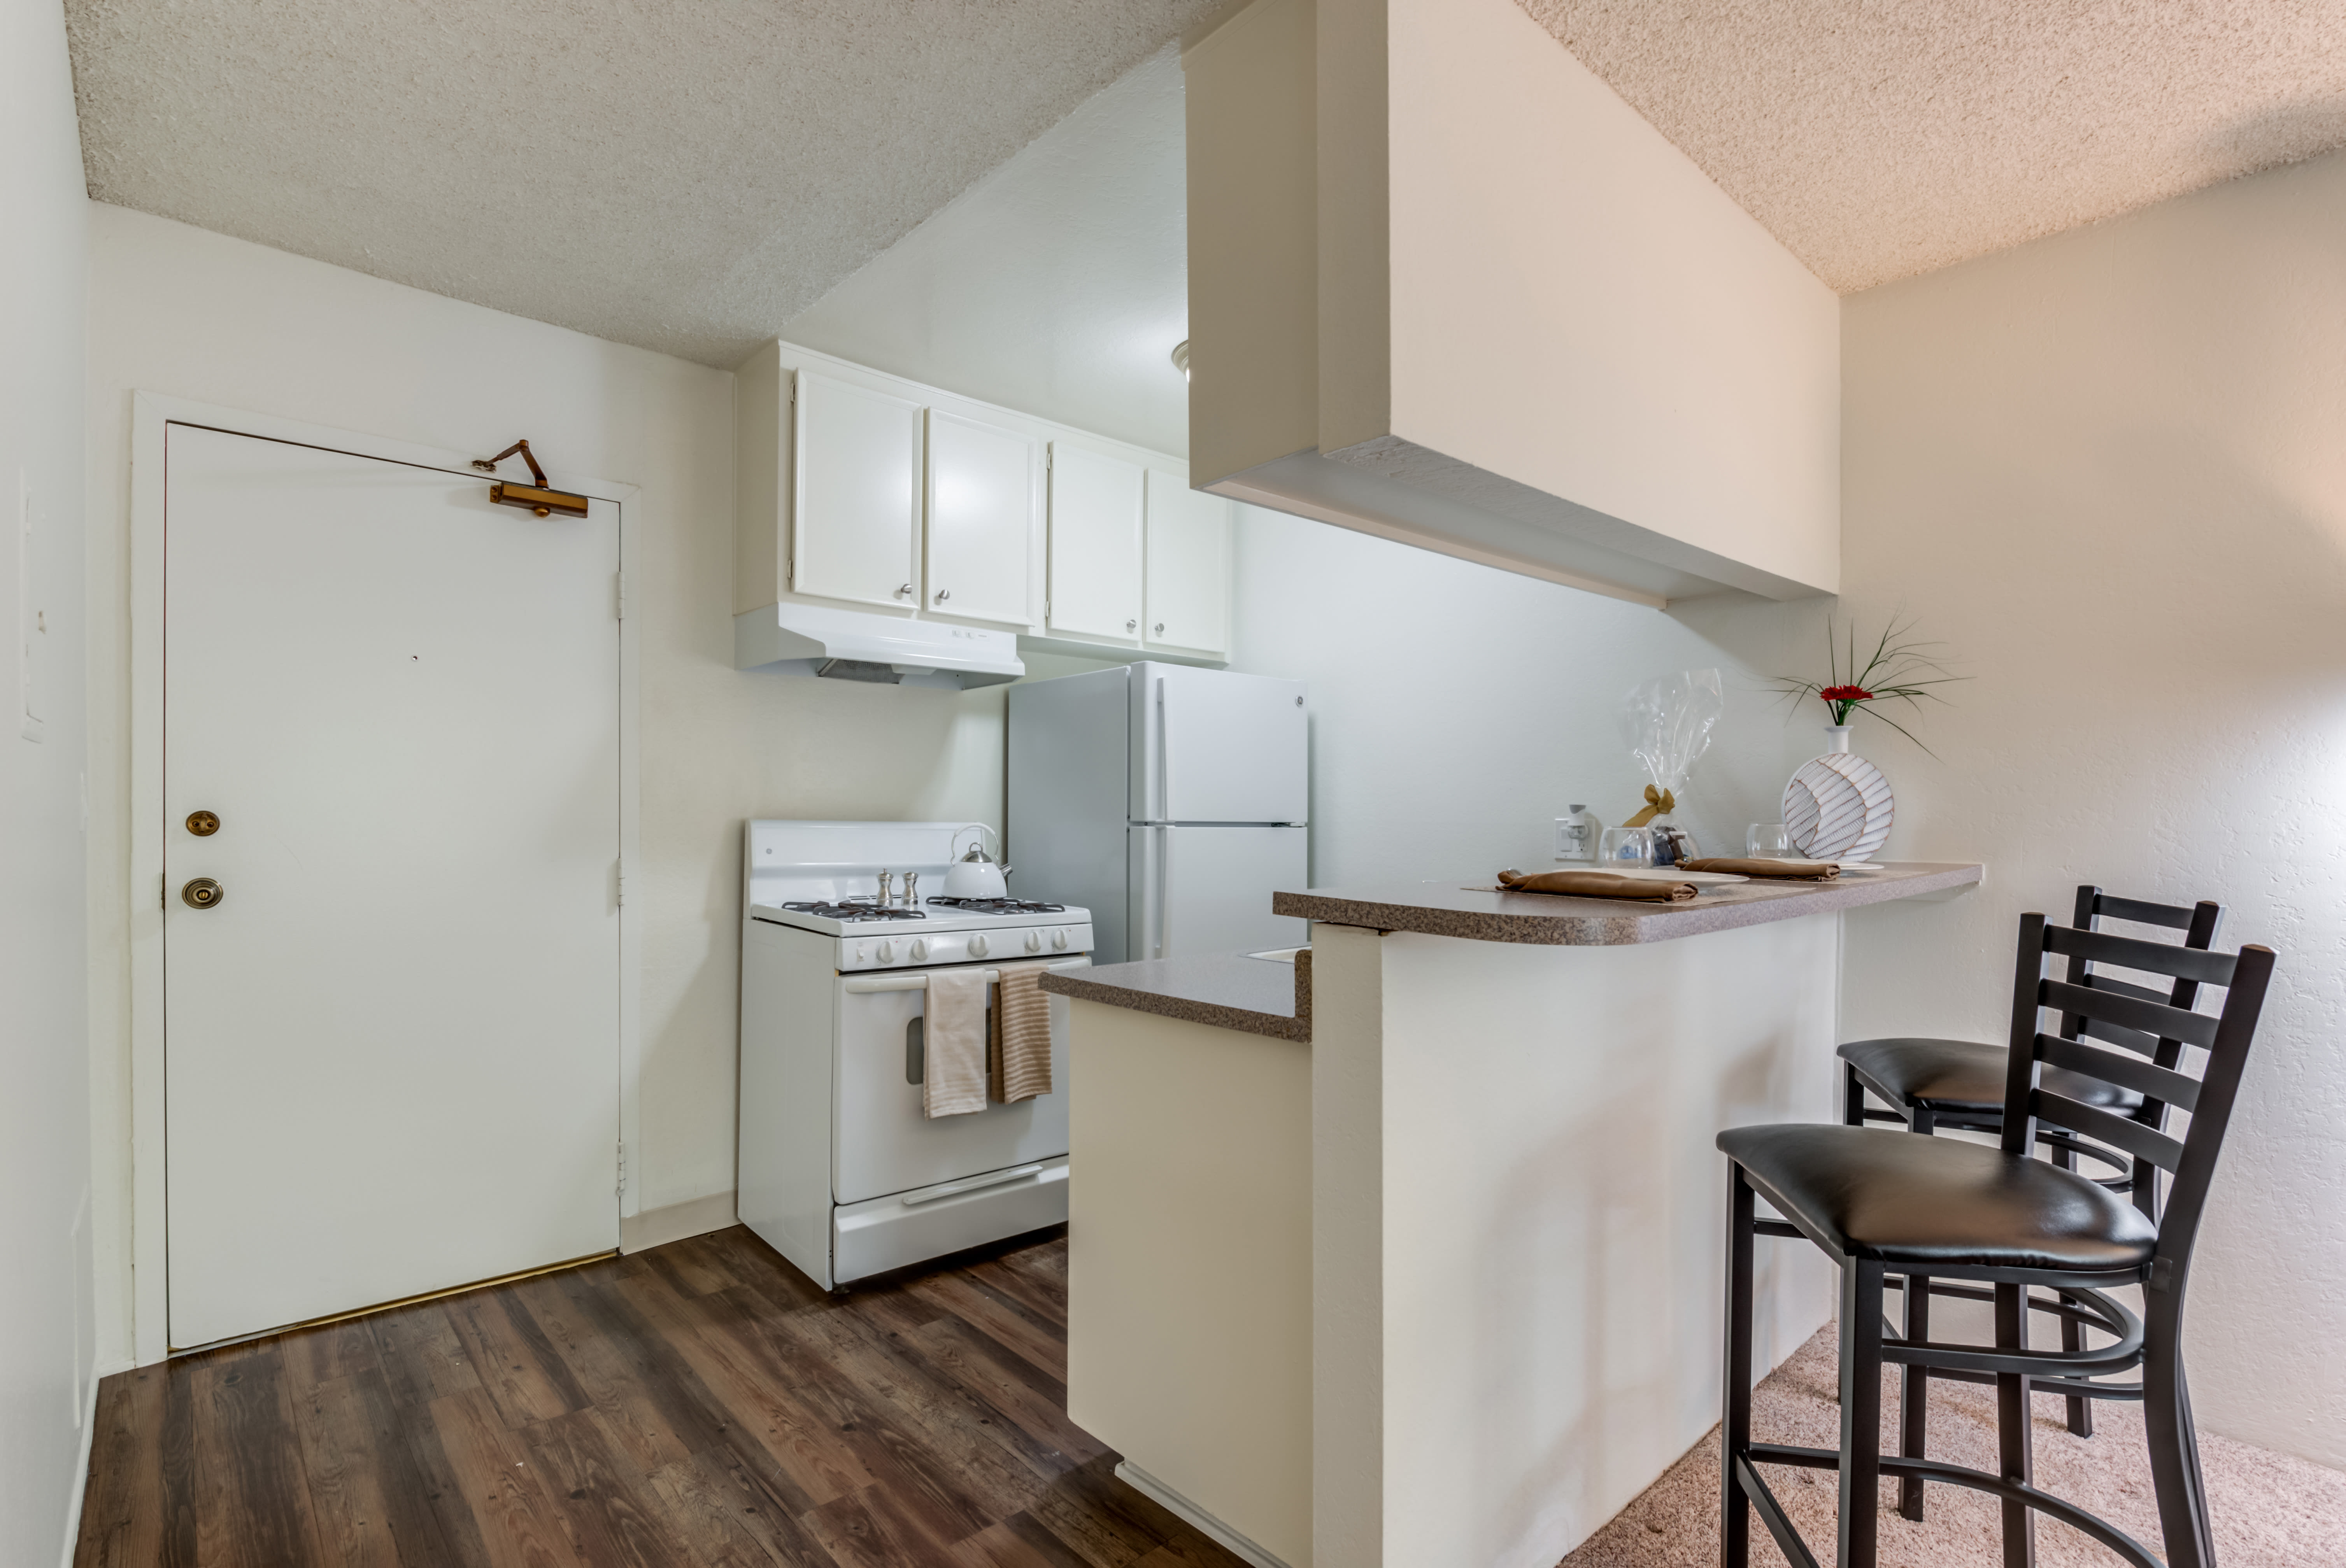 Kitchen with wood style floor and breakfast bar at Vista Pointe I in Studio City, California